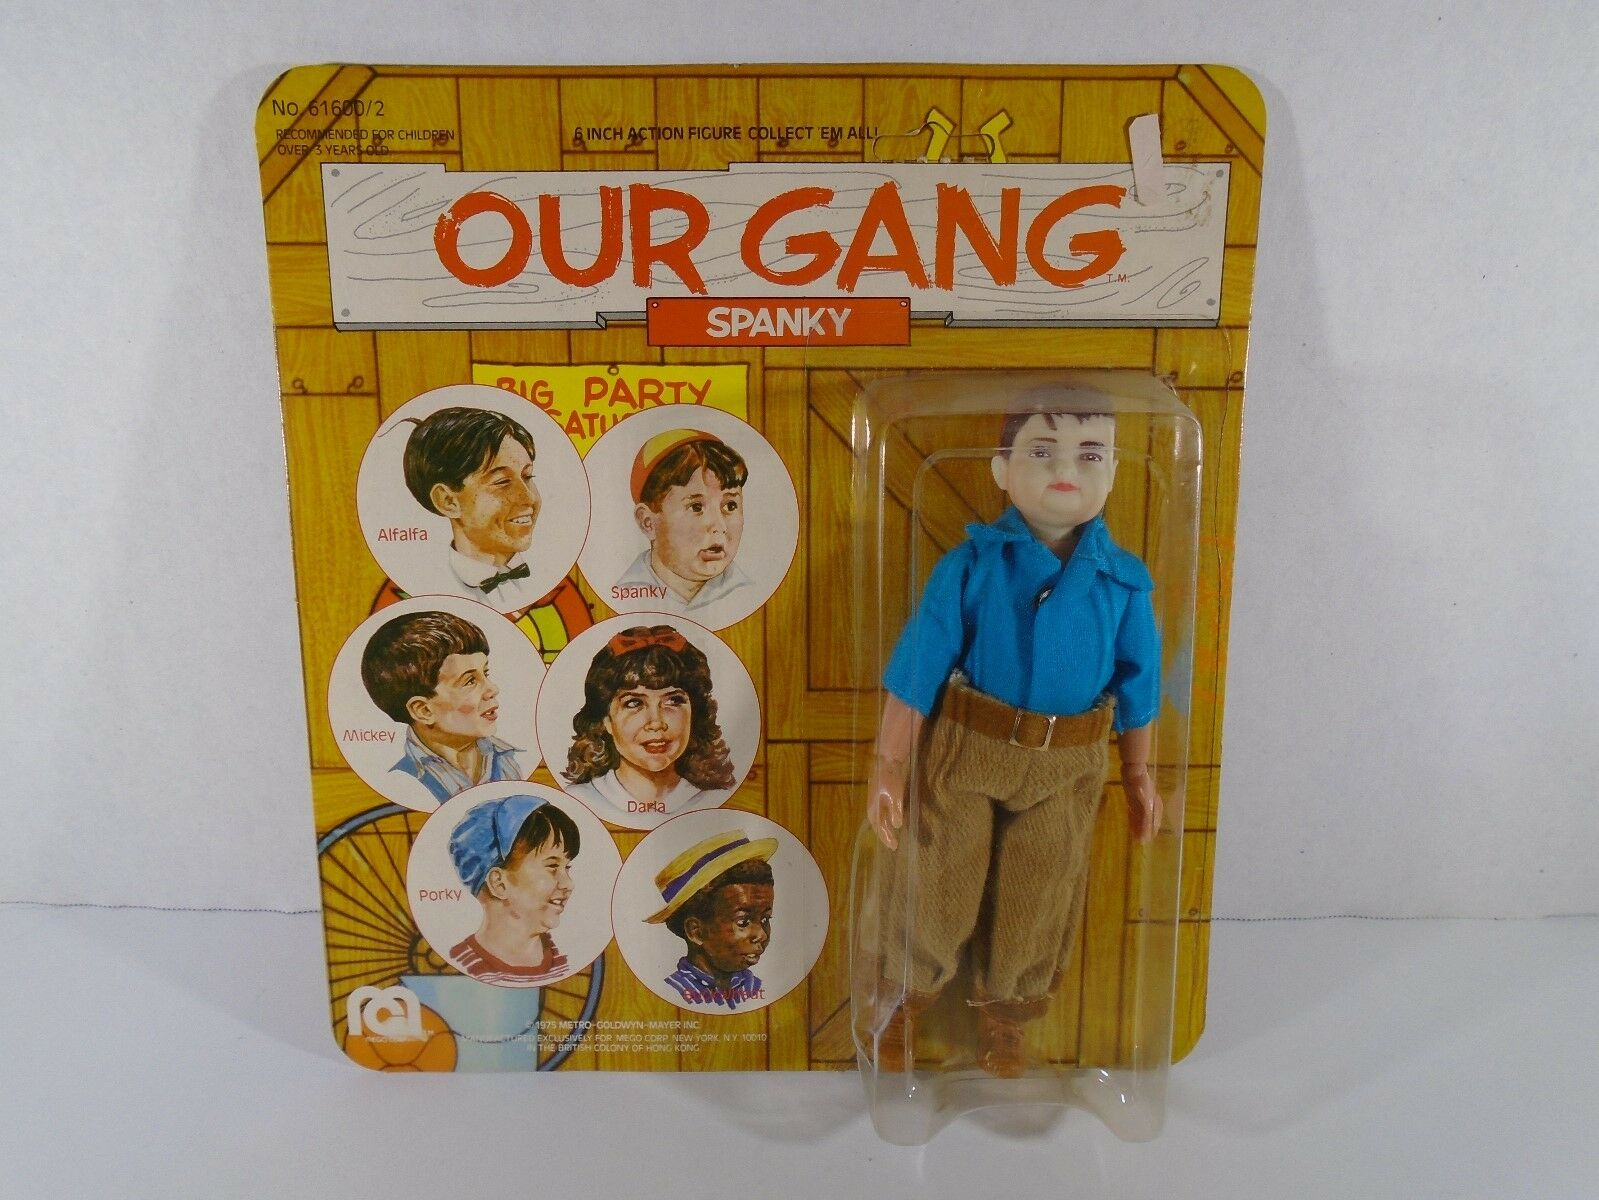 1975 MEGO CORP--OUR GANG--6  SPANKY FIGURE (NEW)